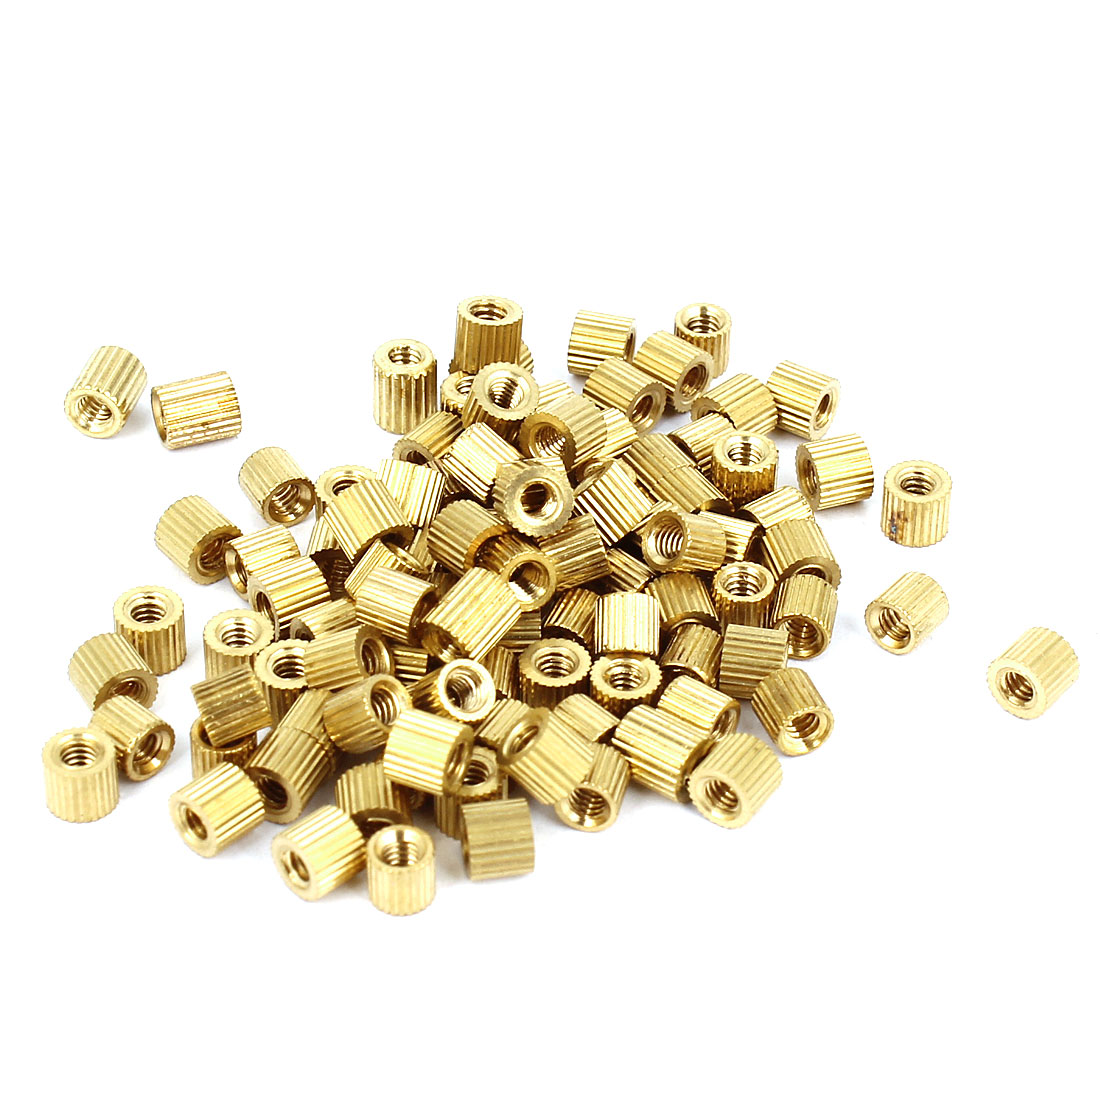 100pcs M2x3mm Hollow Pillar Column Ferrule Cylinder Brass Standoff Spacer